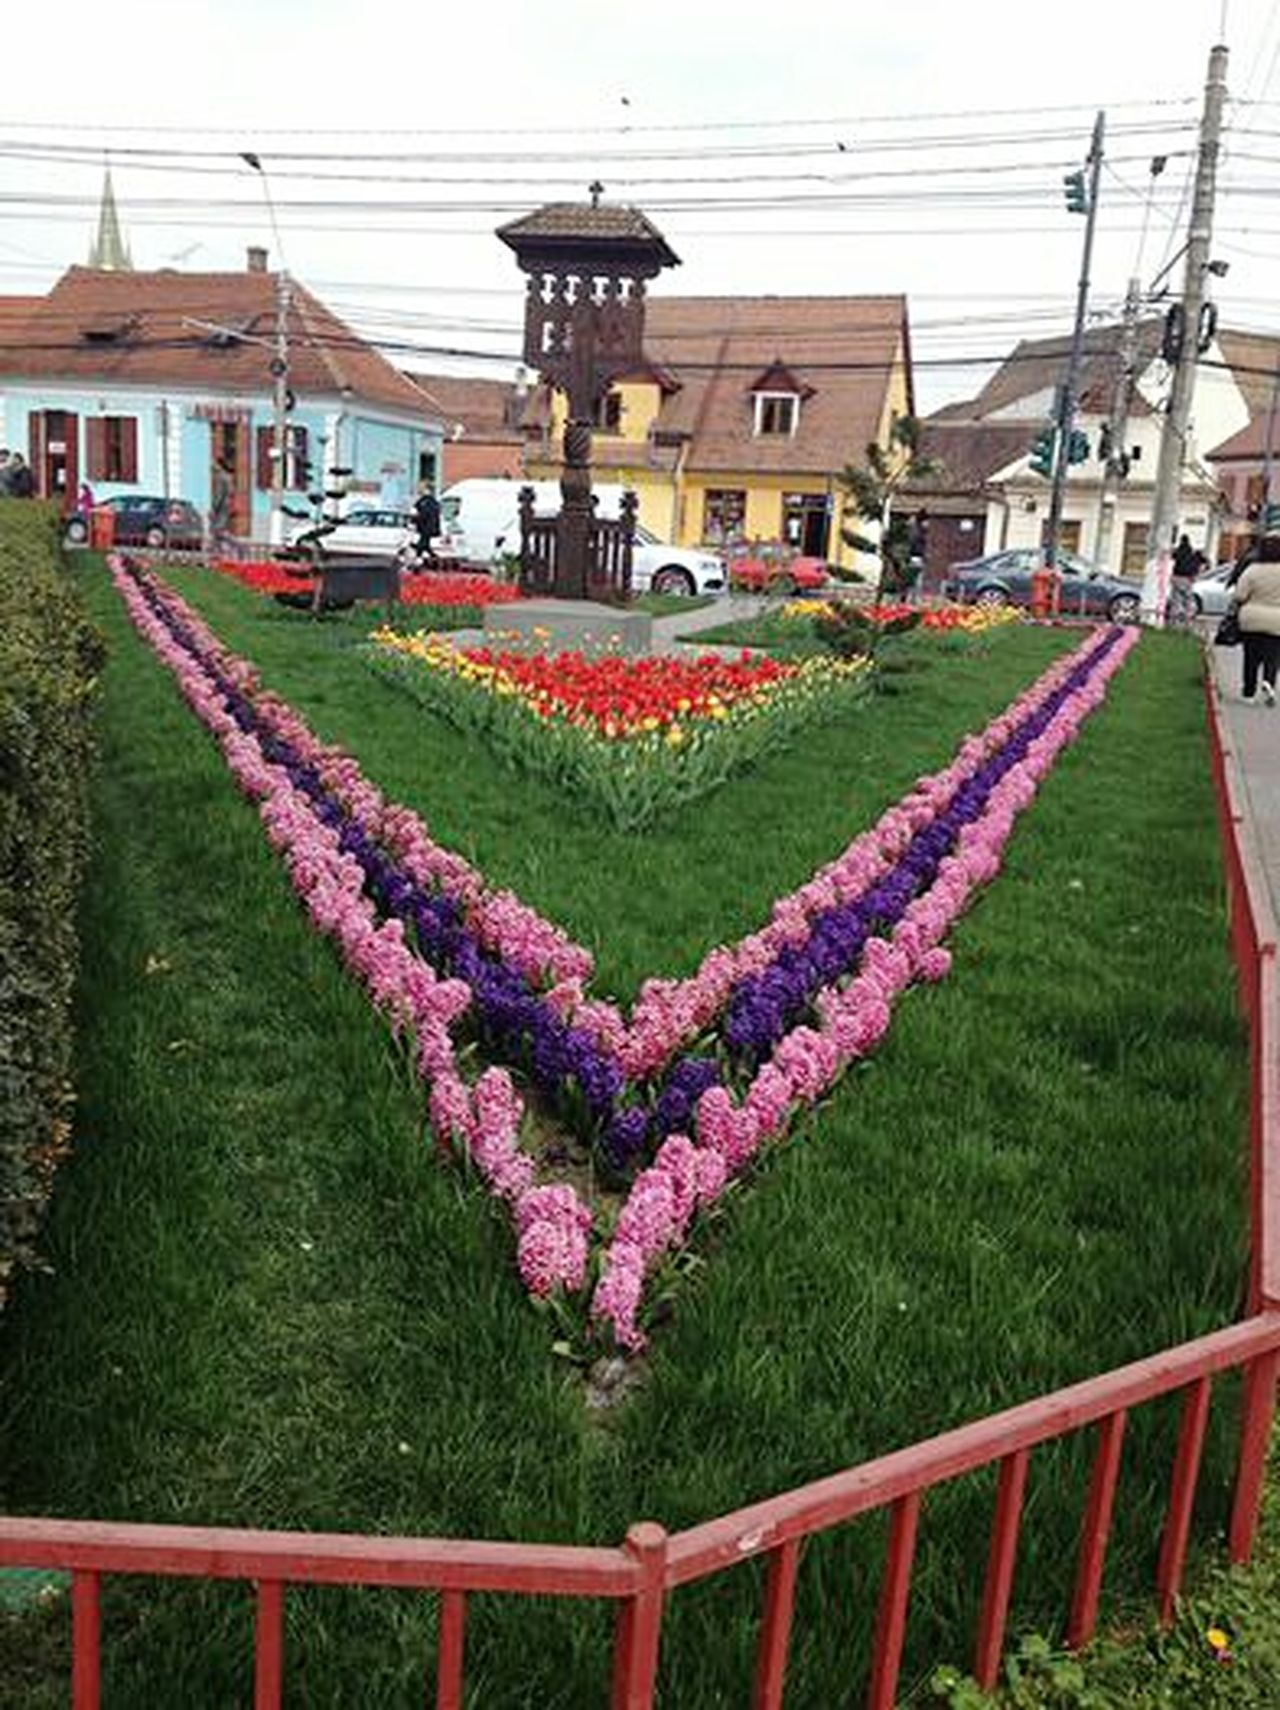 Flower Grass Flowerbed Plant Building Exterior Architecture Built Structure City Sky Outdoors Nature No People Freshness Day Medias Romania Hyacinths Hyacinths And Tulips